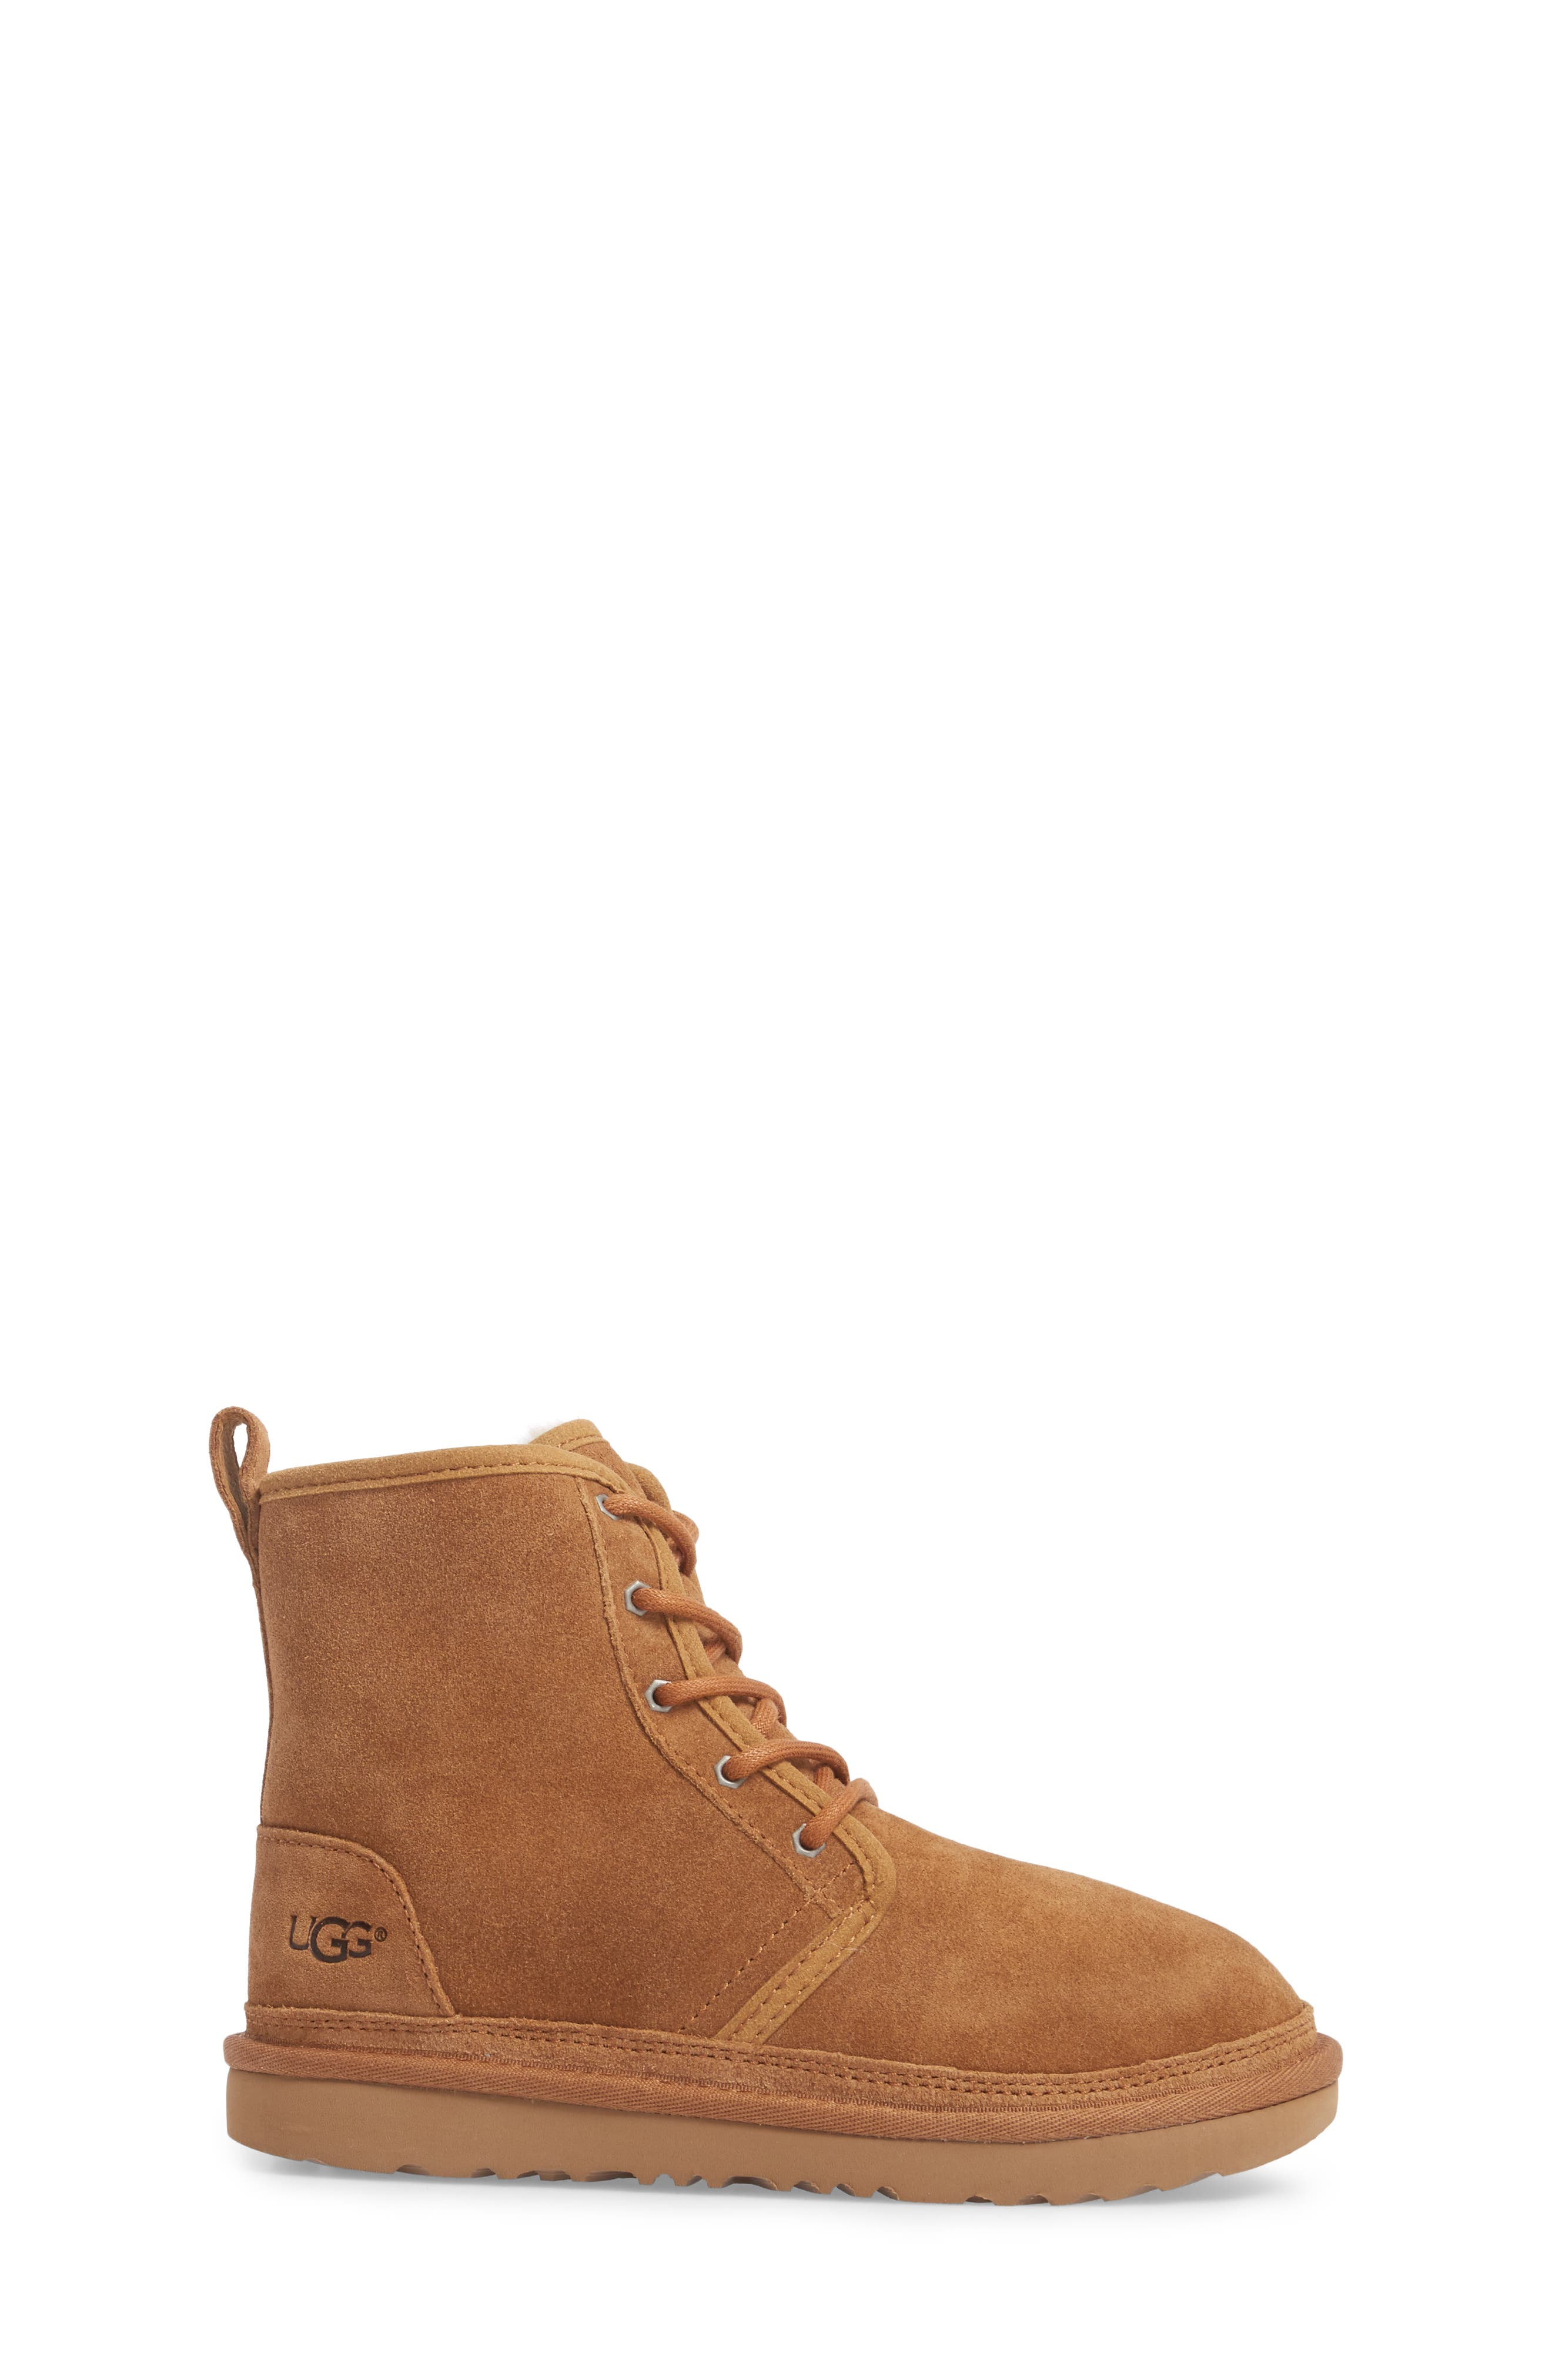 UGG<SUP>®</SUP>, Harkley Lace-Up Boot, Alternate thumbnail 3, color, CHESTNUT